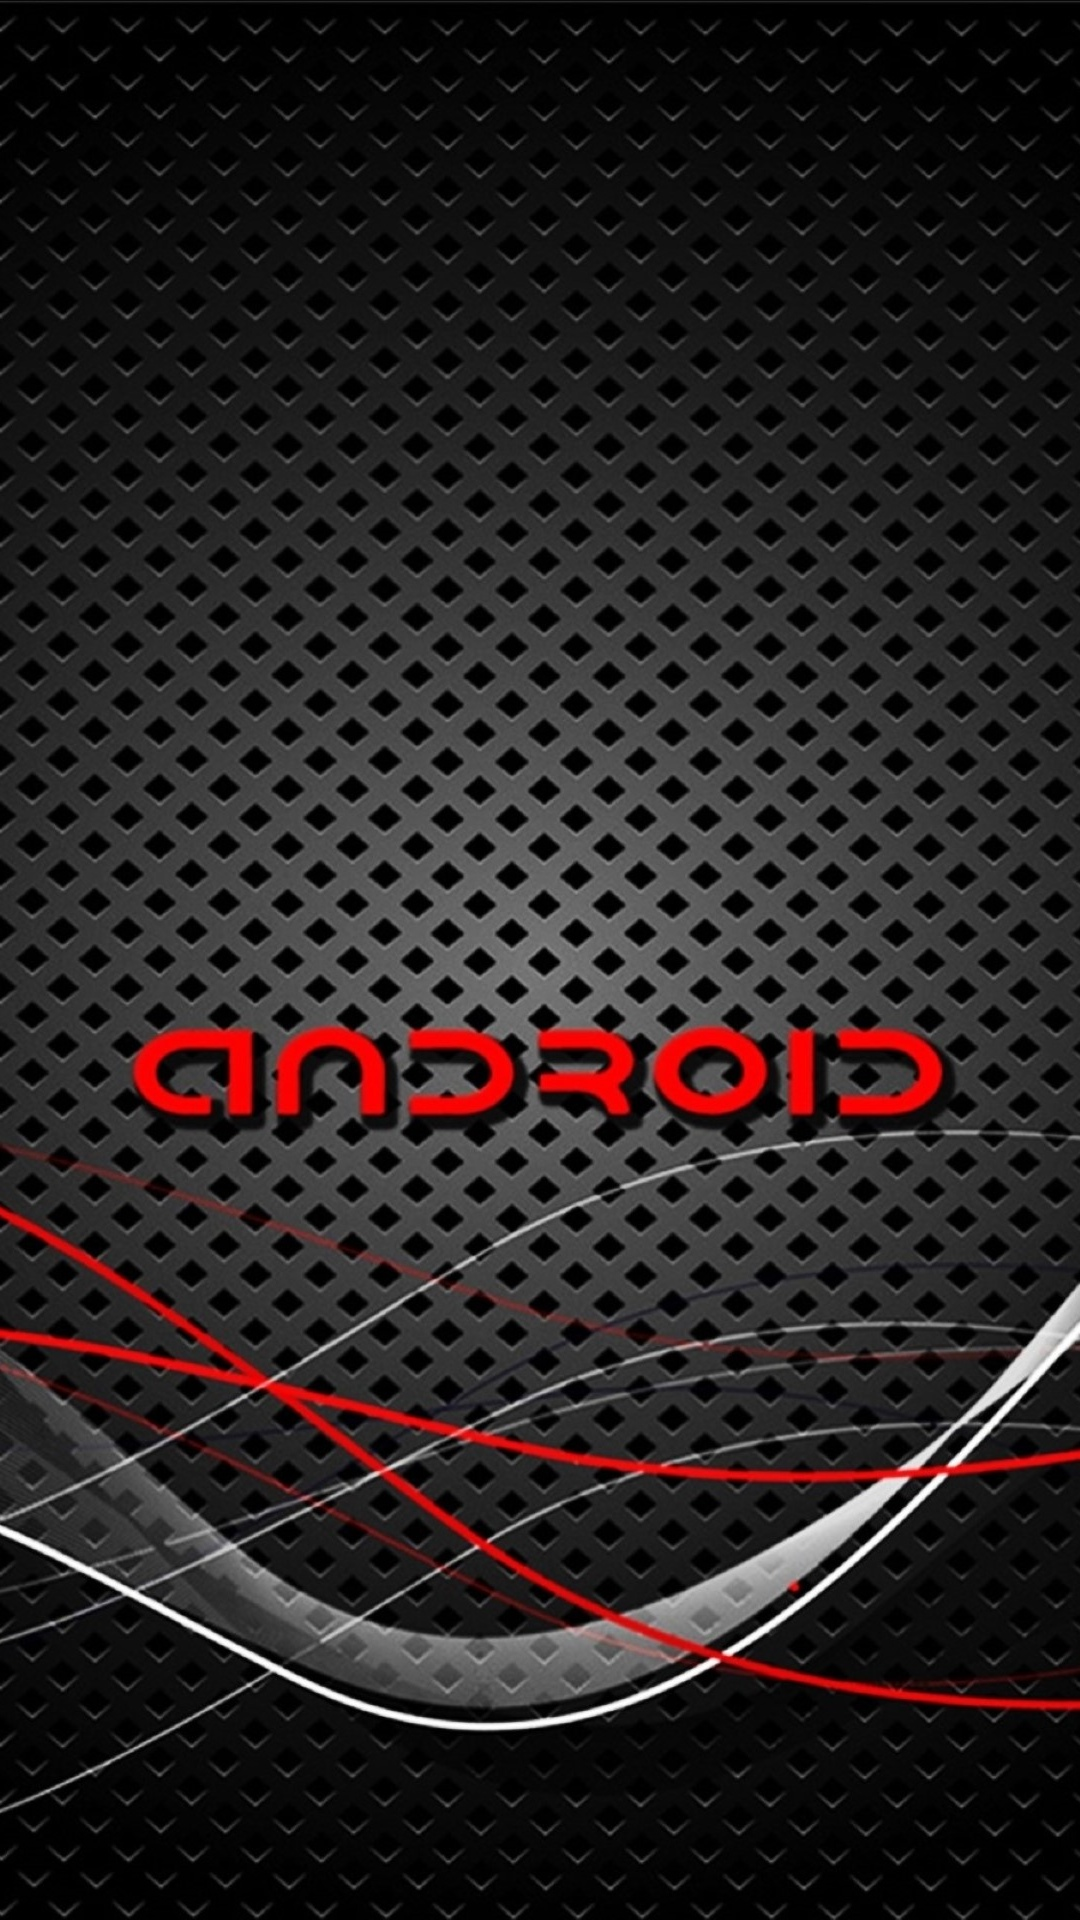 Android carbon smartphone wallpapers hd getphotos - Wallpapers android hd ...